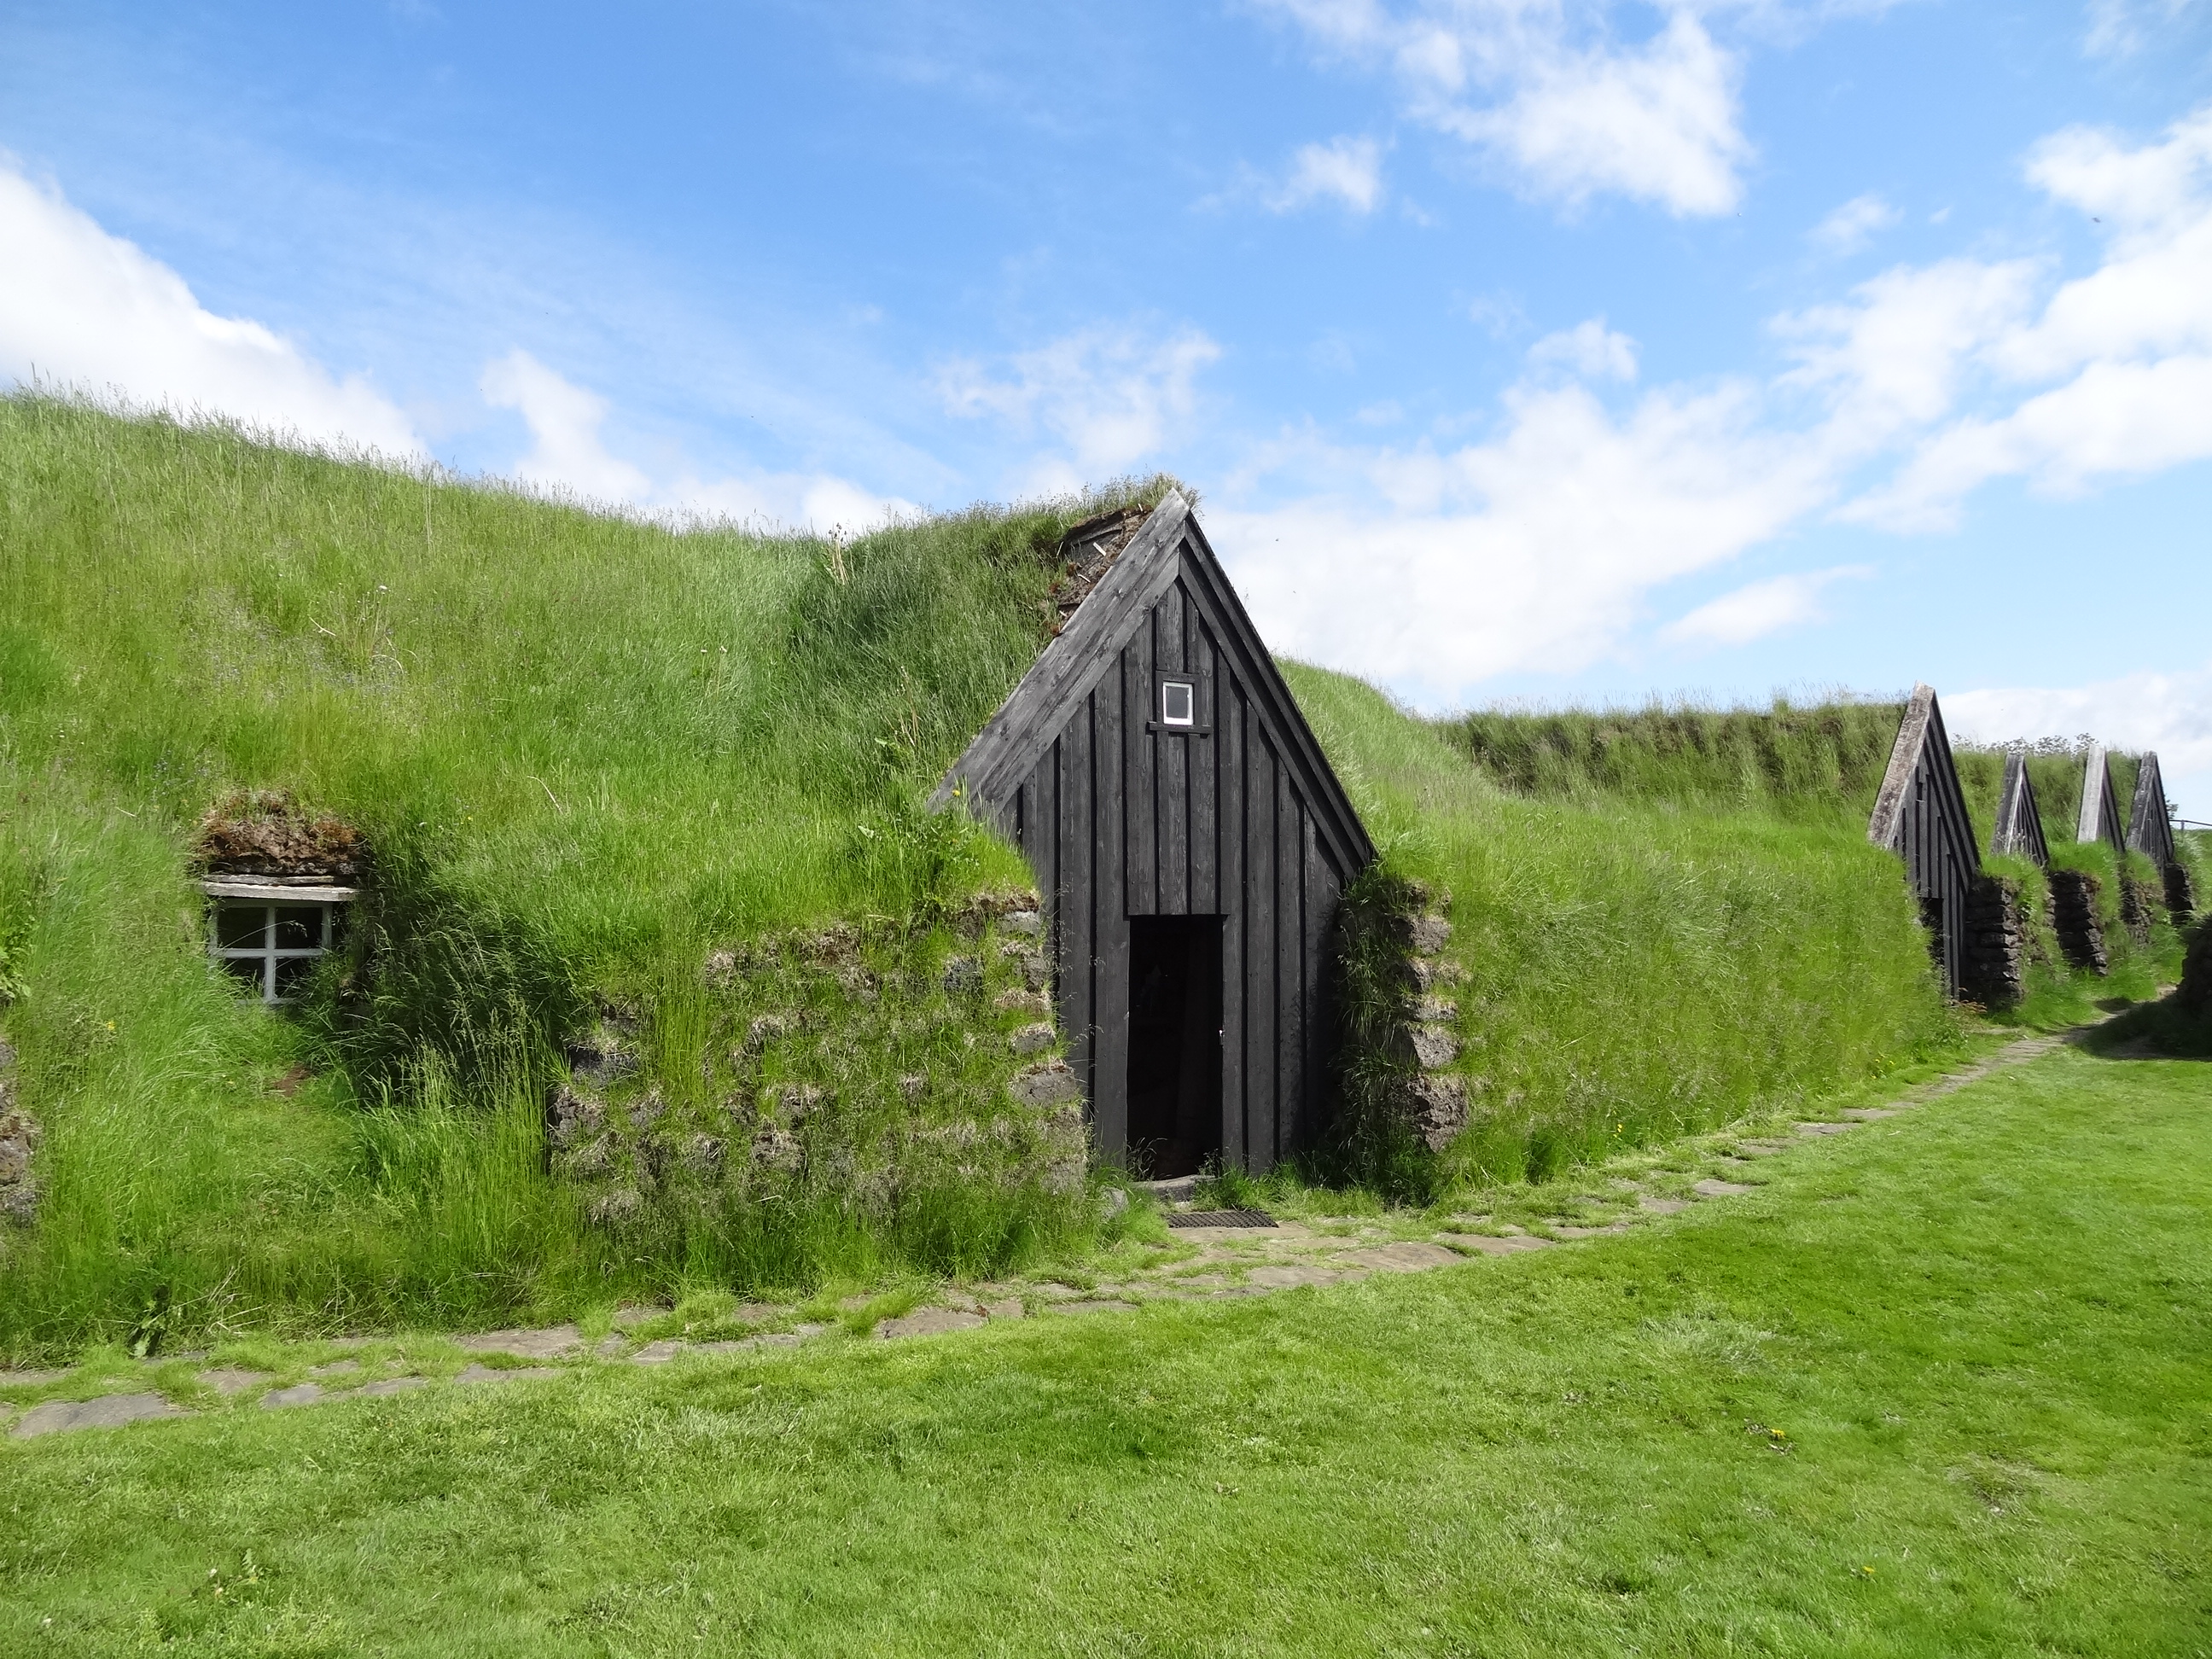 Turf Houses Traditional Green Buildings Iceland on Icelandic Turf House